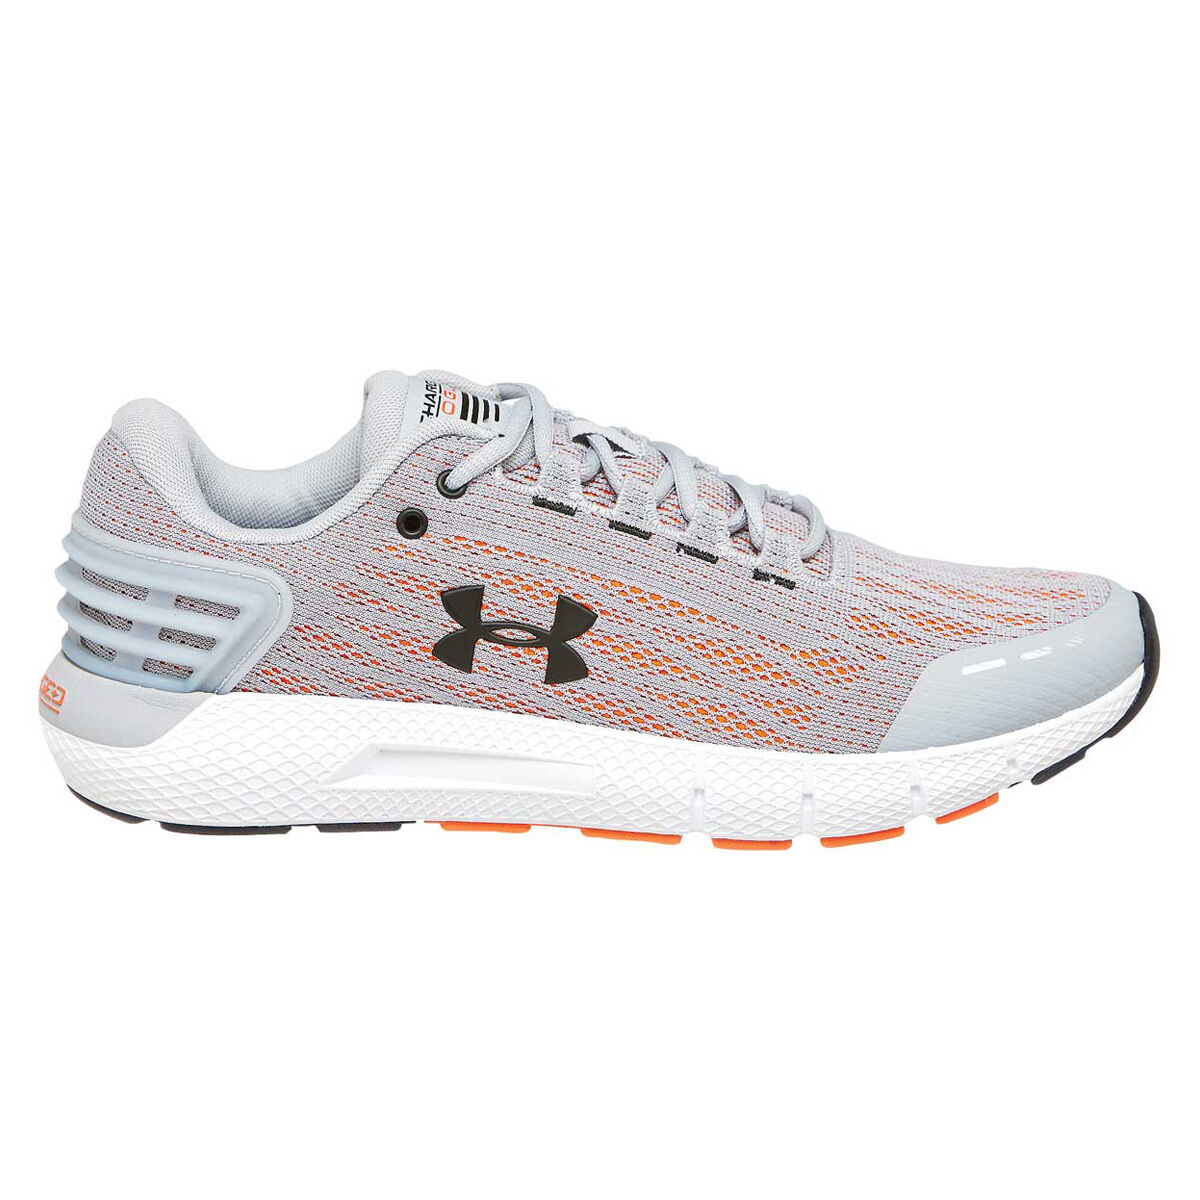 Under Armour Charged Rogue Mens Running